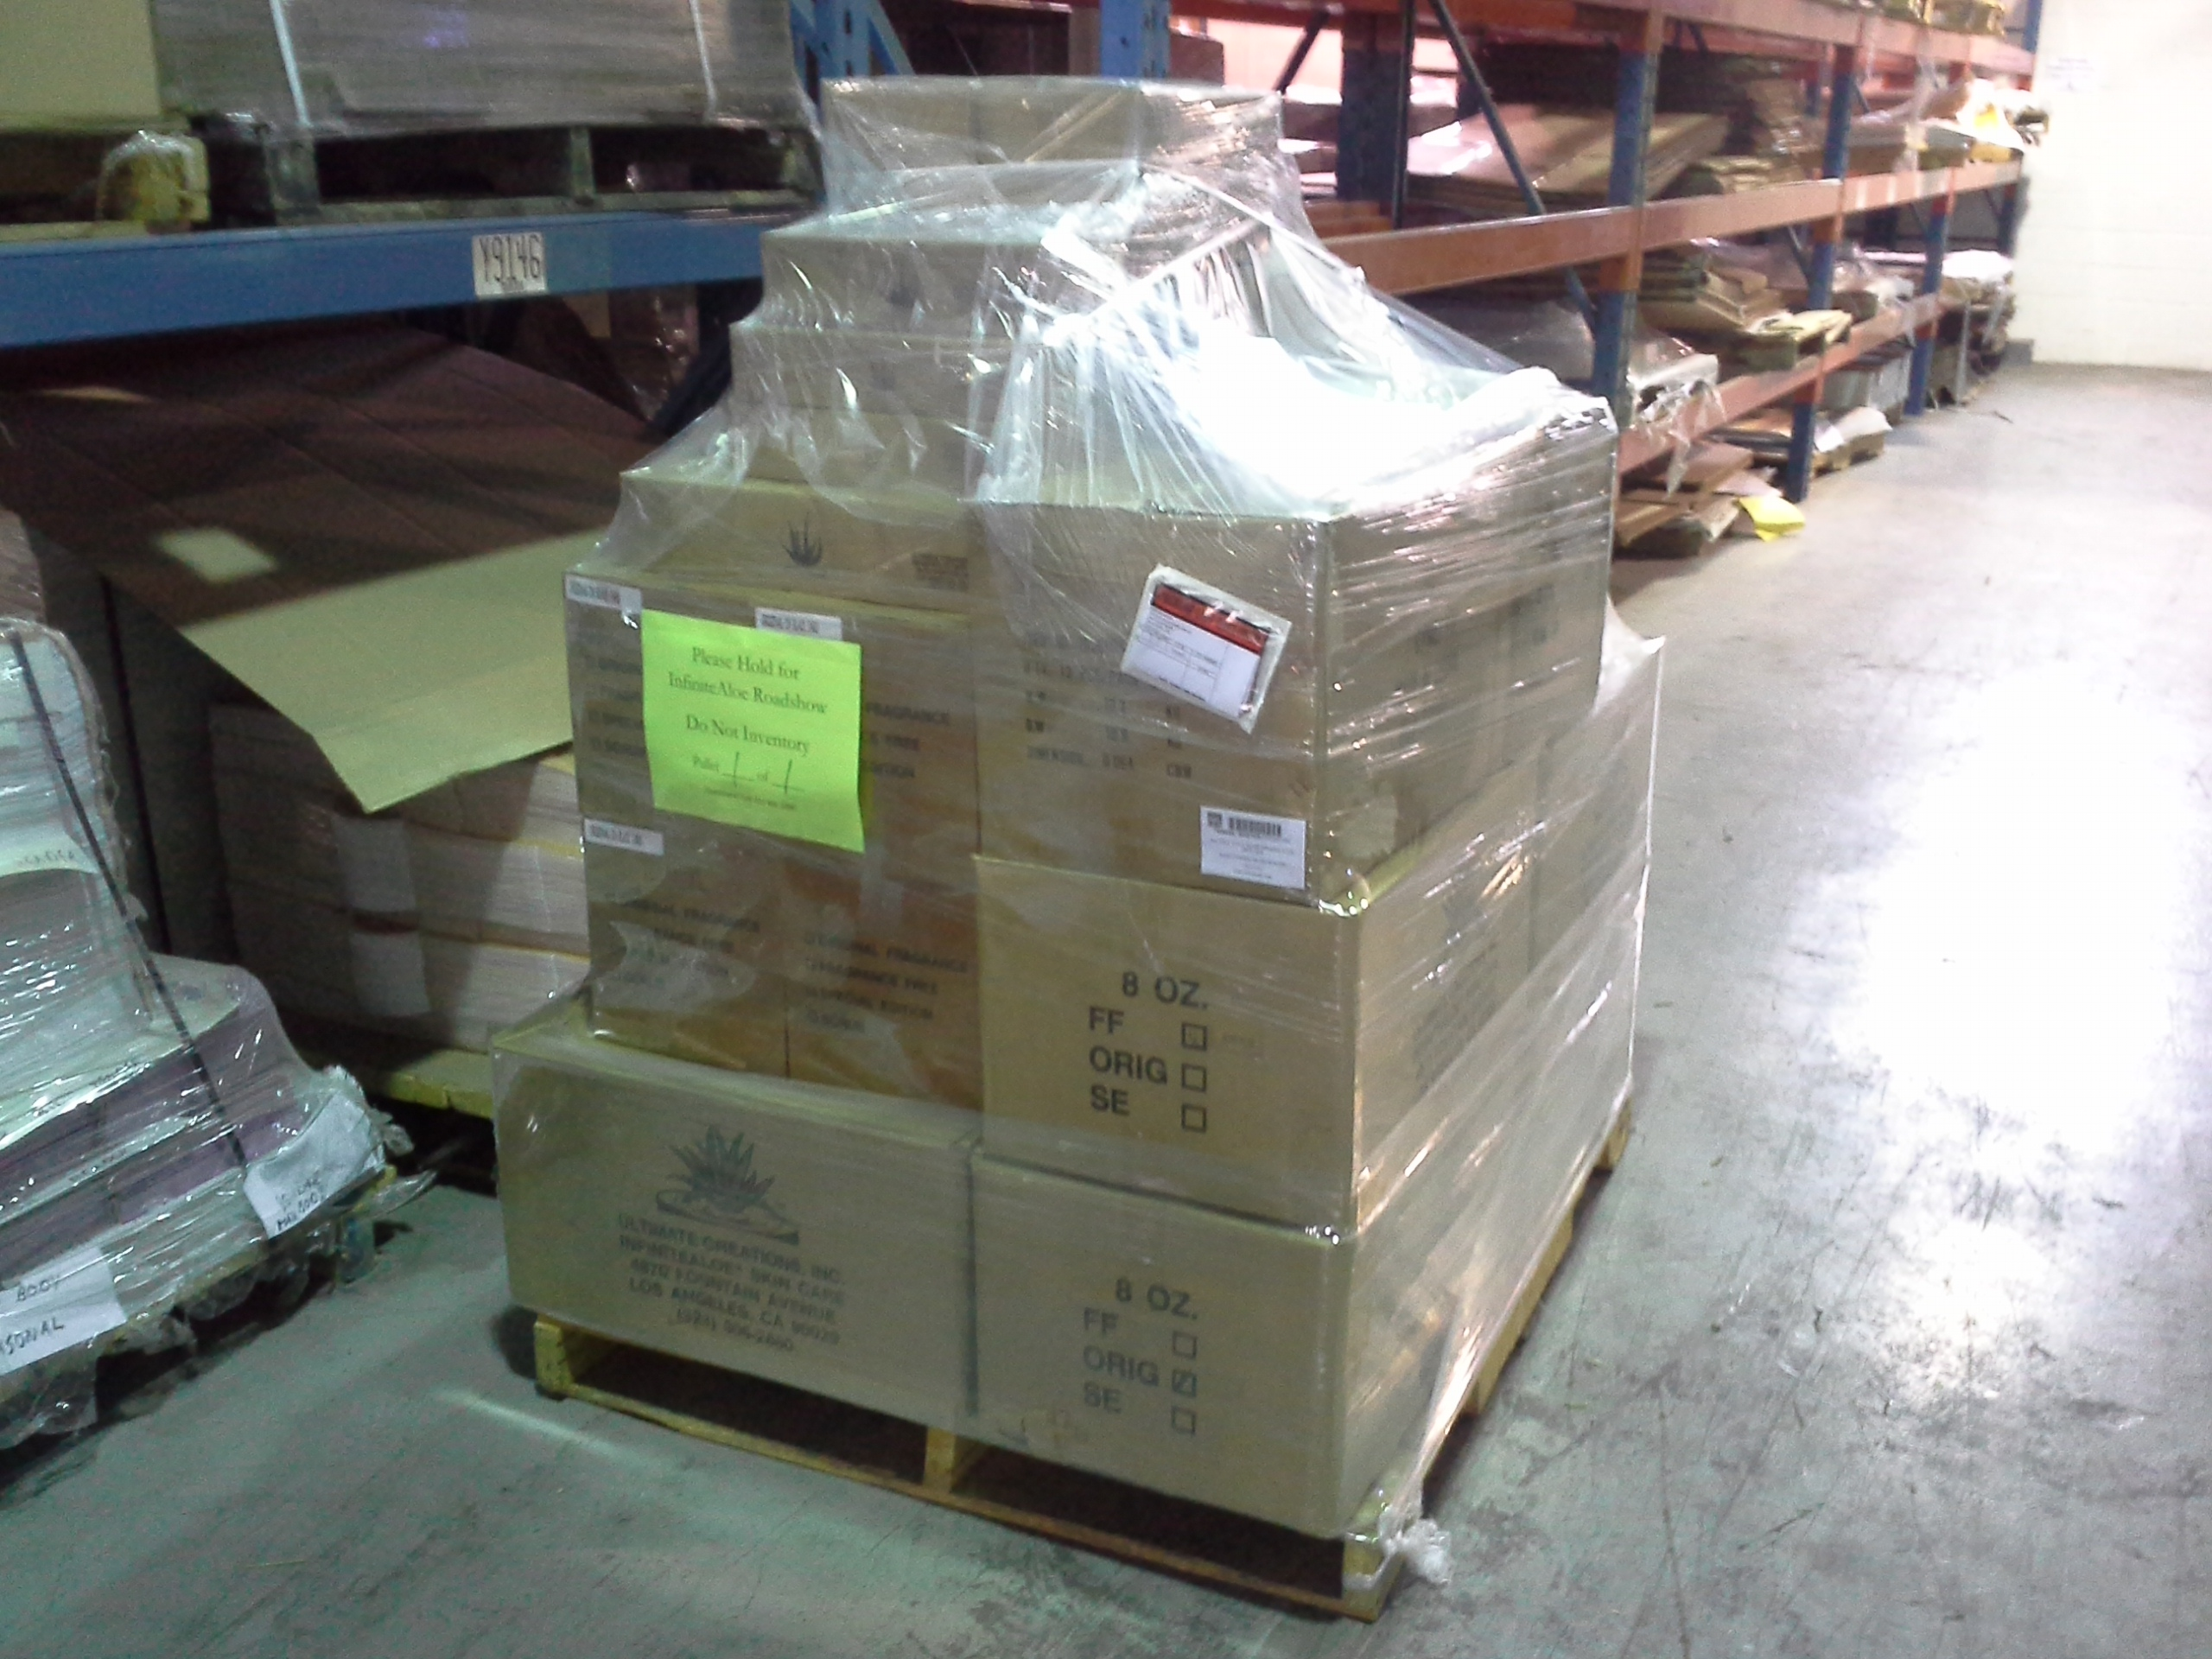 Pick and pack fulfillment for Costco Road Show orders by Repack Canada co-packing